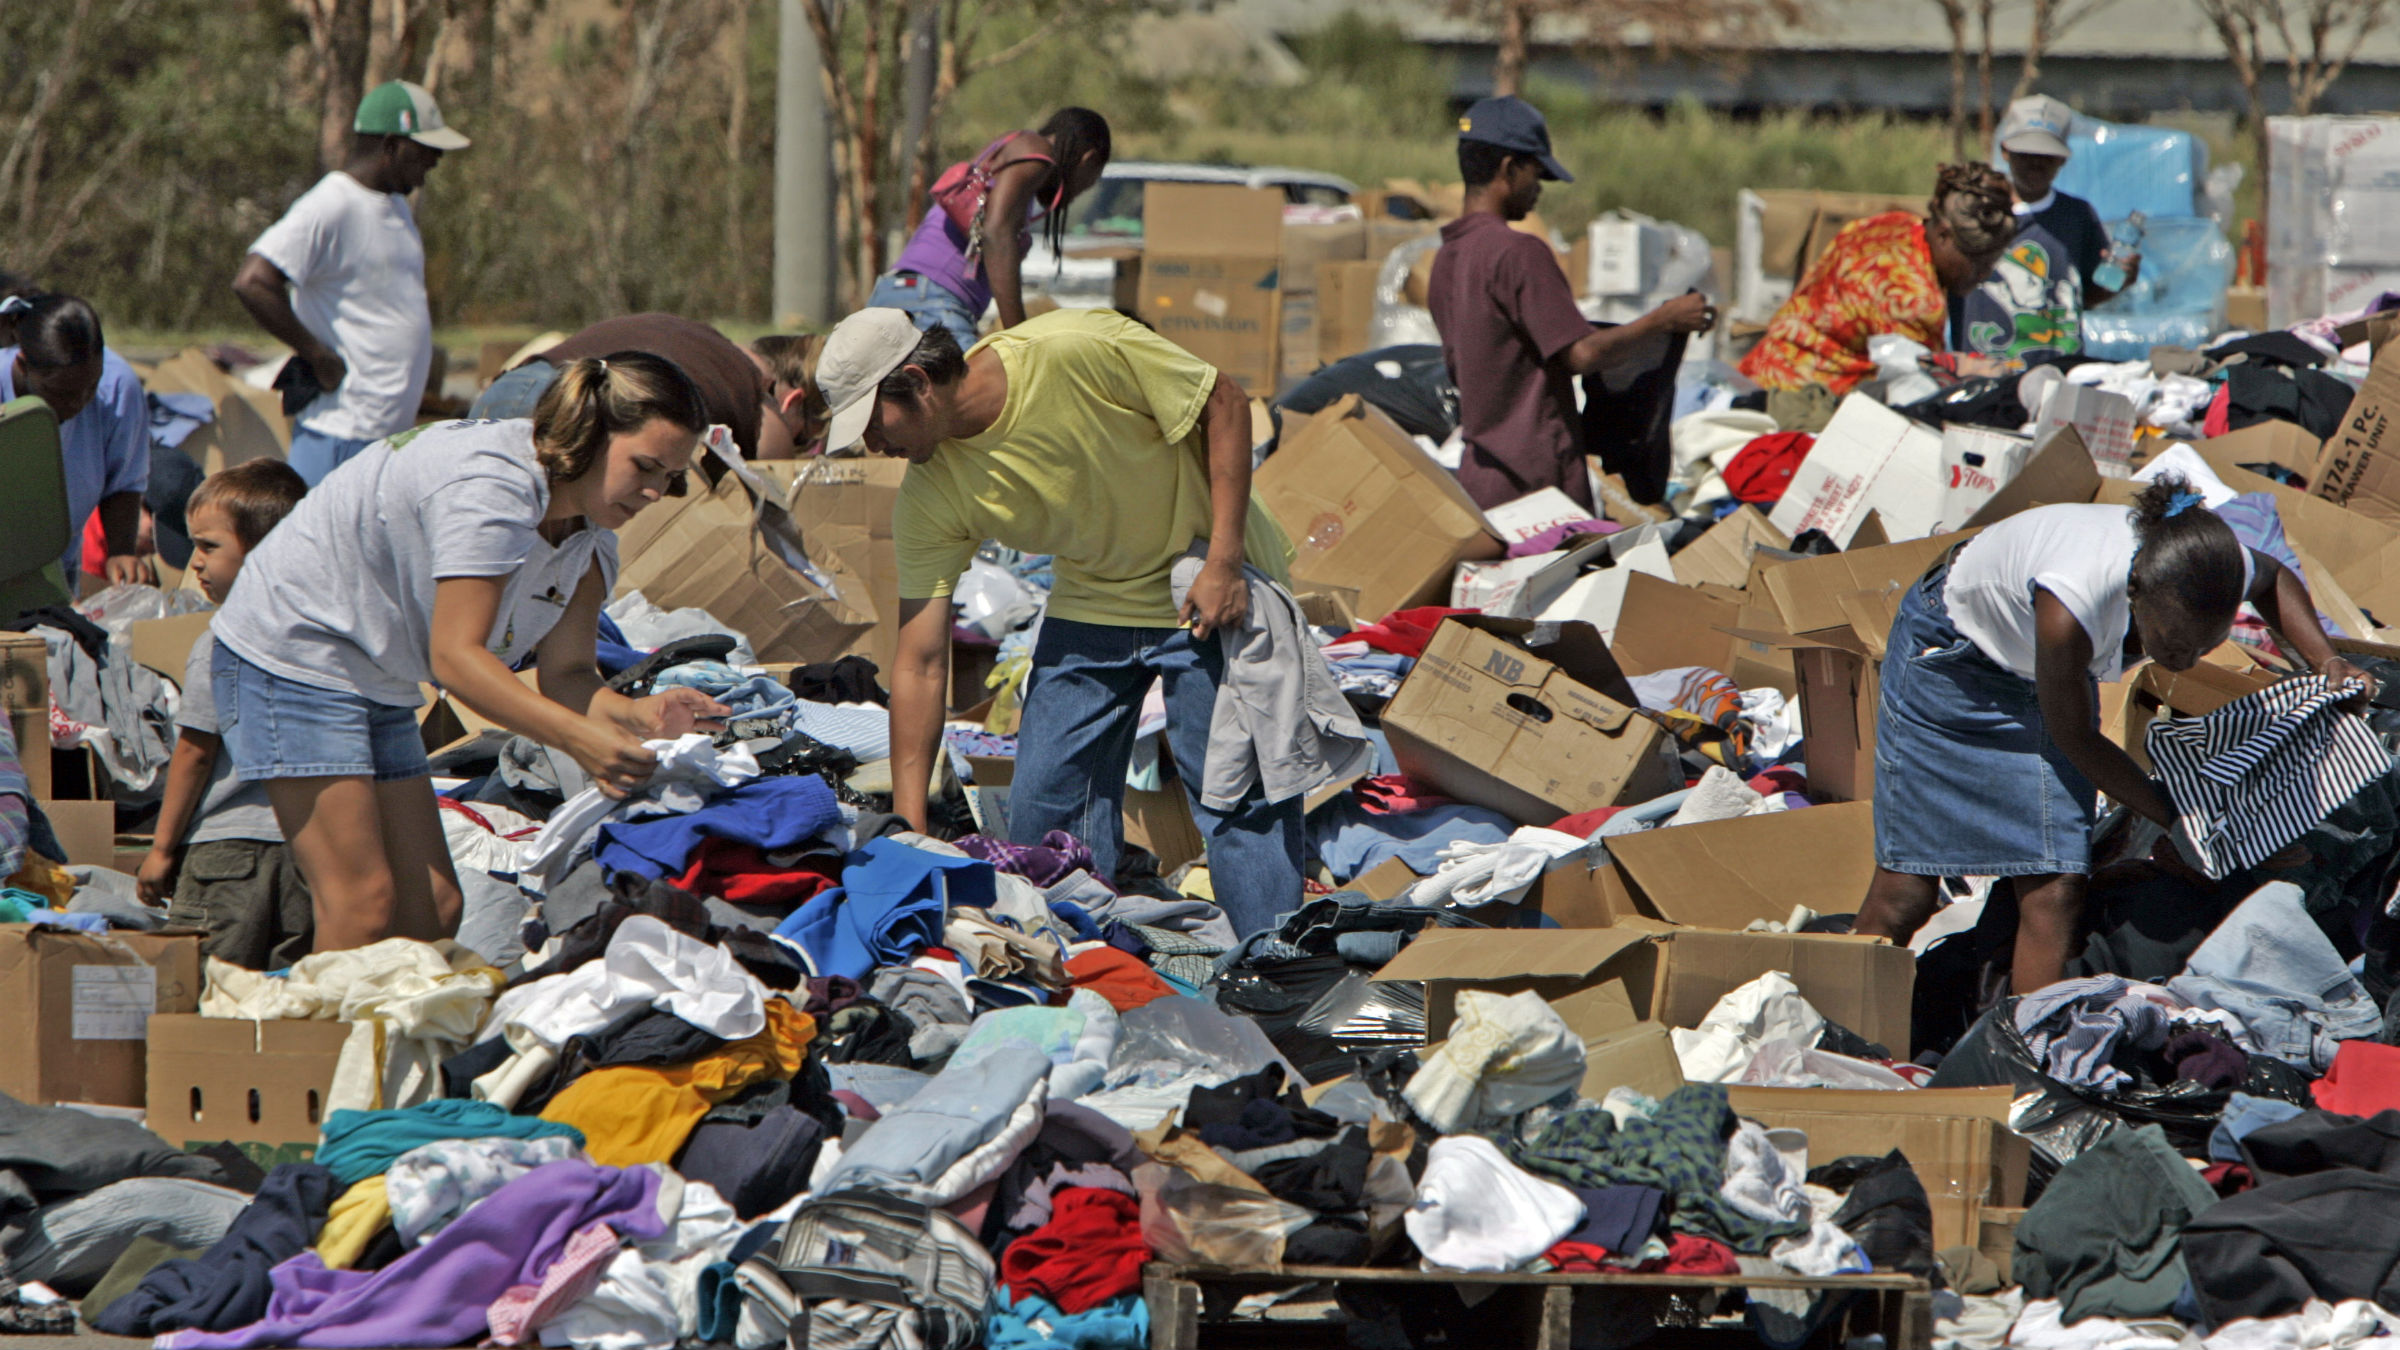 Residents search for clothes in a donation area in Gulfport, Miss., on Thursday, Sept. 8, 2005. Aid is pouring in from across the country and volunteers from various agencies continue to arrive to help victims of Hurricane Katrina.